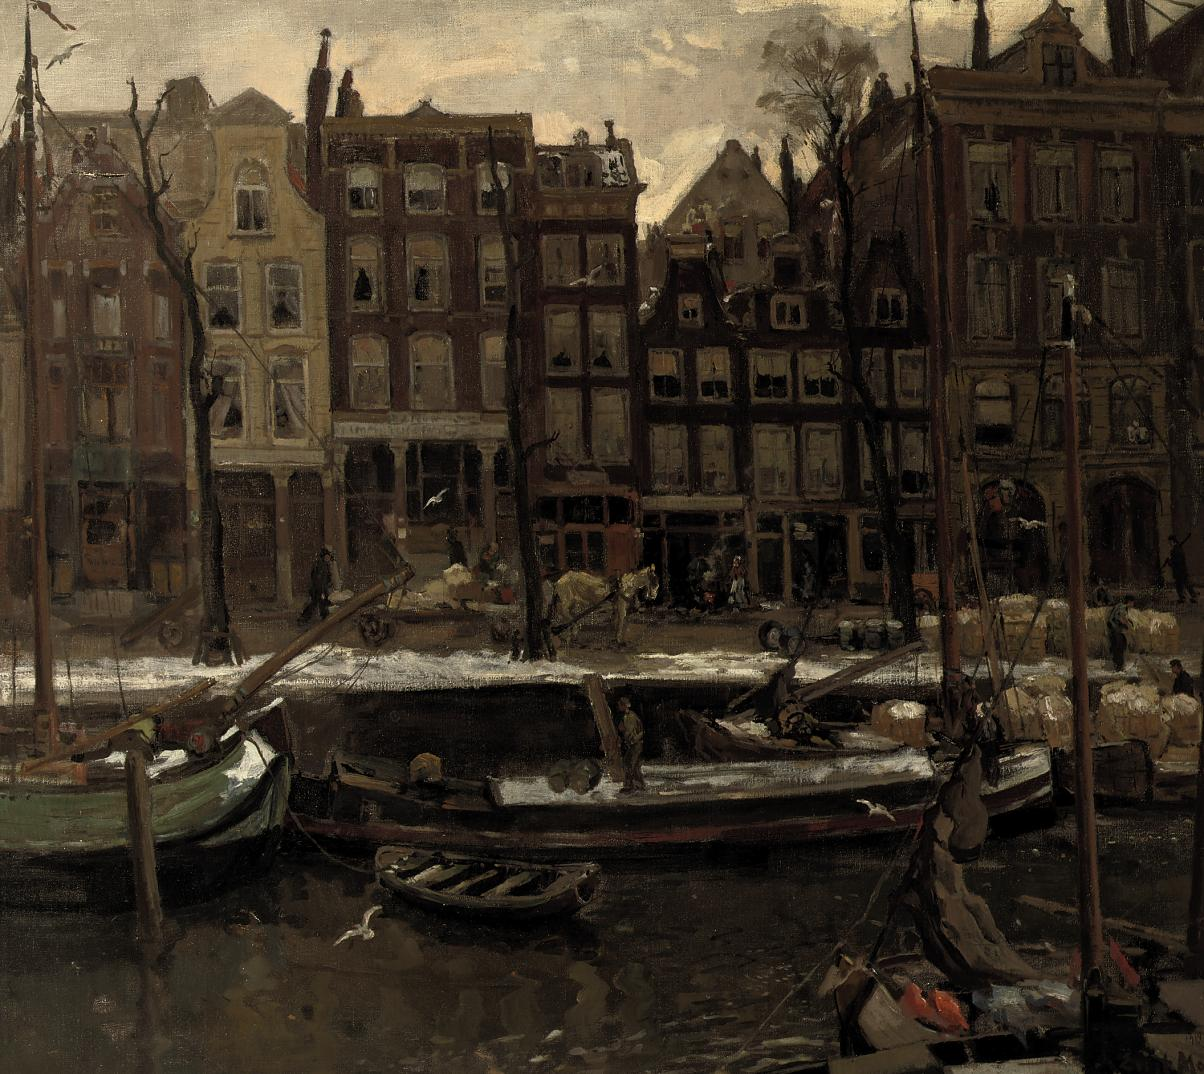 A canal scene in winter